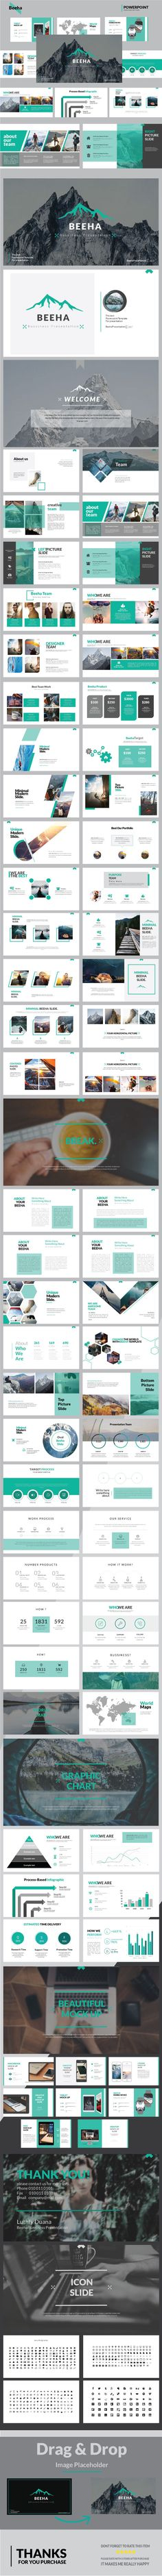 Beeha - Multipurpose PowerPoint Presentation Templates